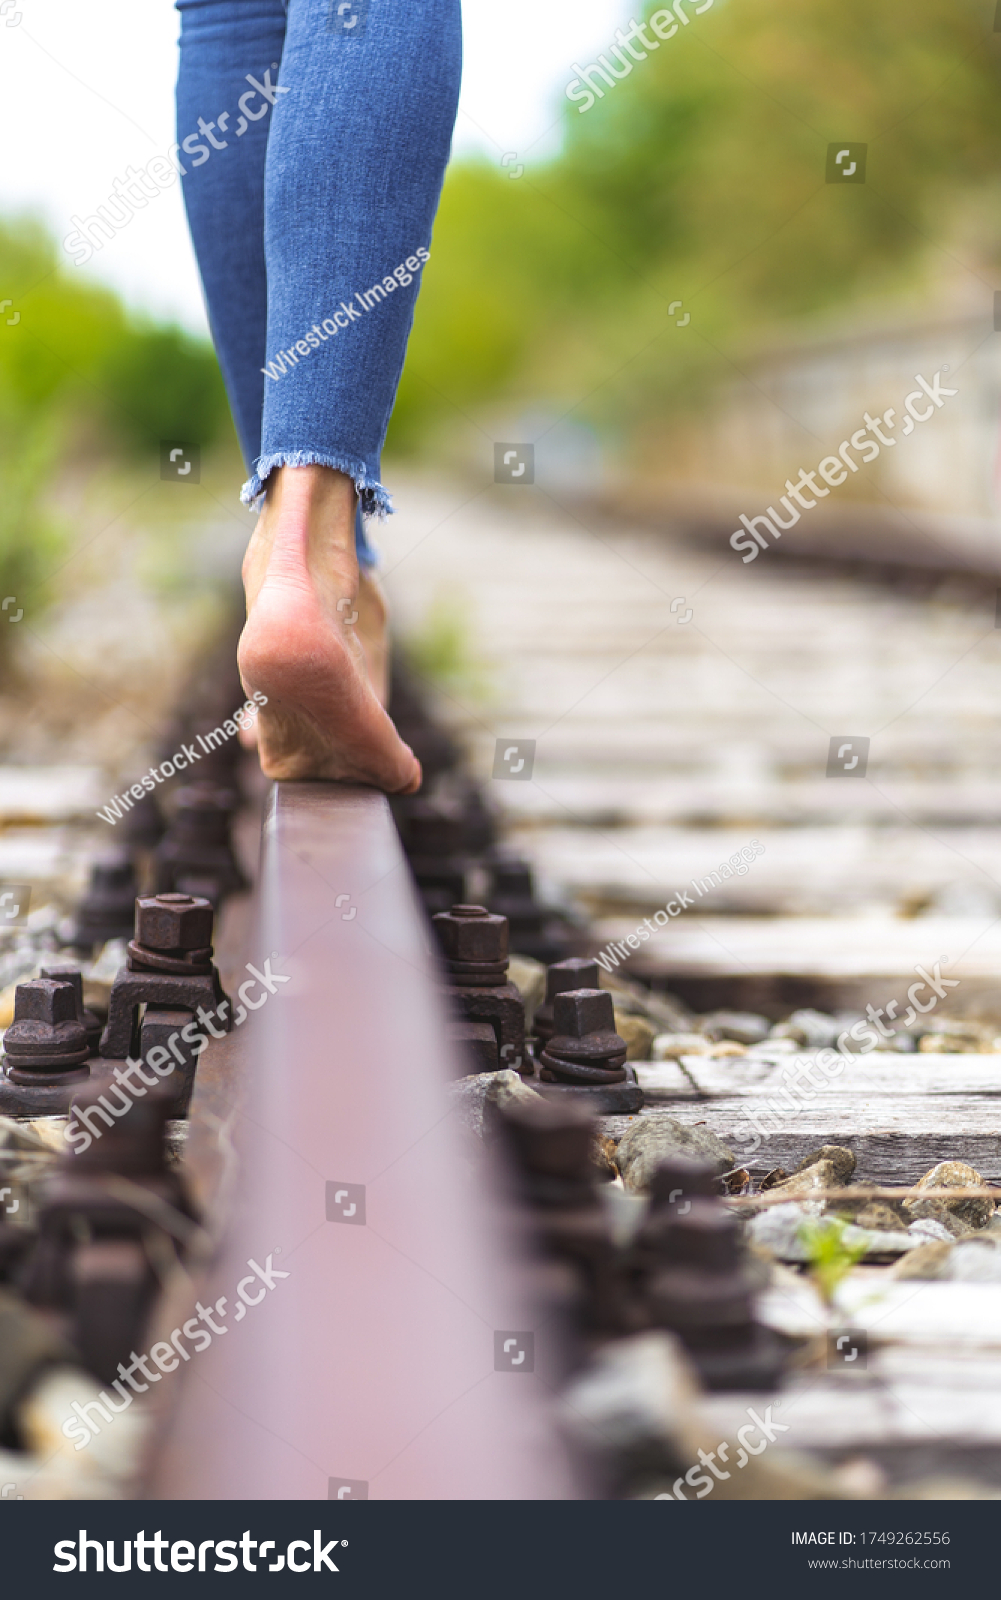 https://image.shutterstock.com/shutterstock/photos/1749262556/display_1500/stock-photo-a-vertical-shot-of-a-female-in-jeans-walking-through-the-train-rails-barefoot-1749262556.jpg